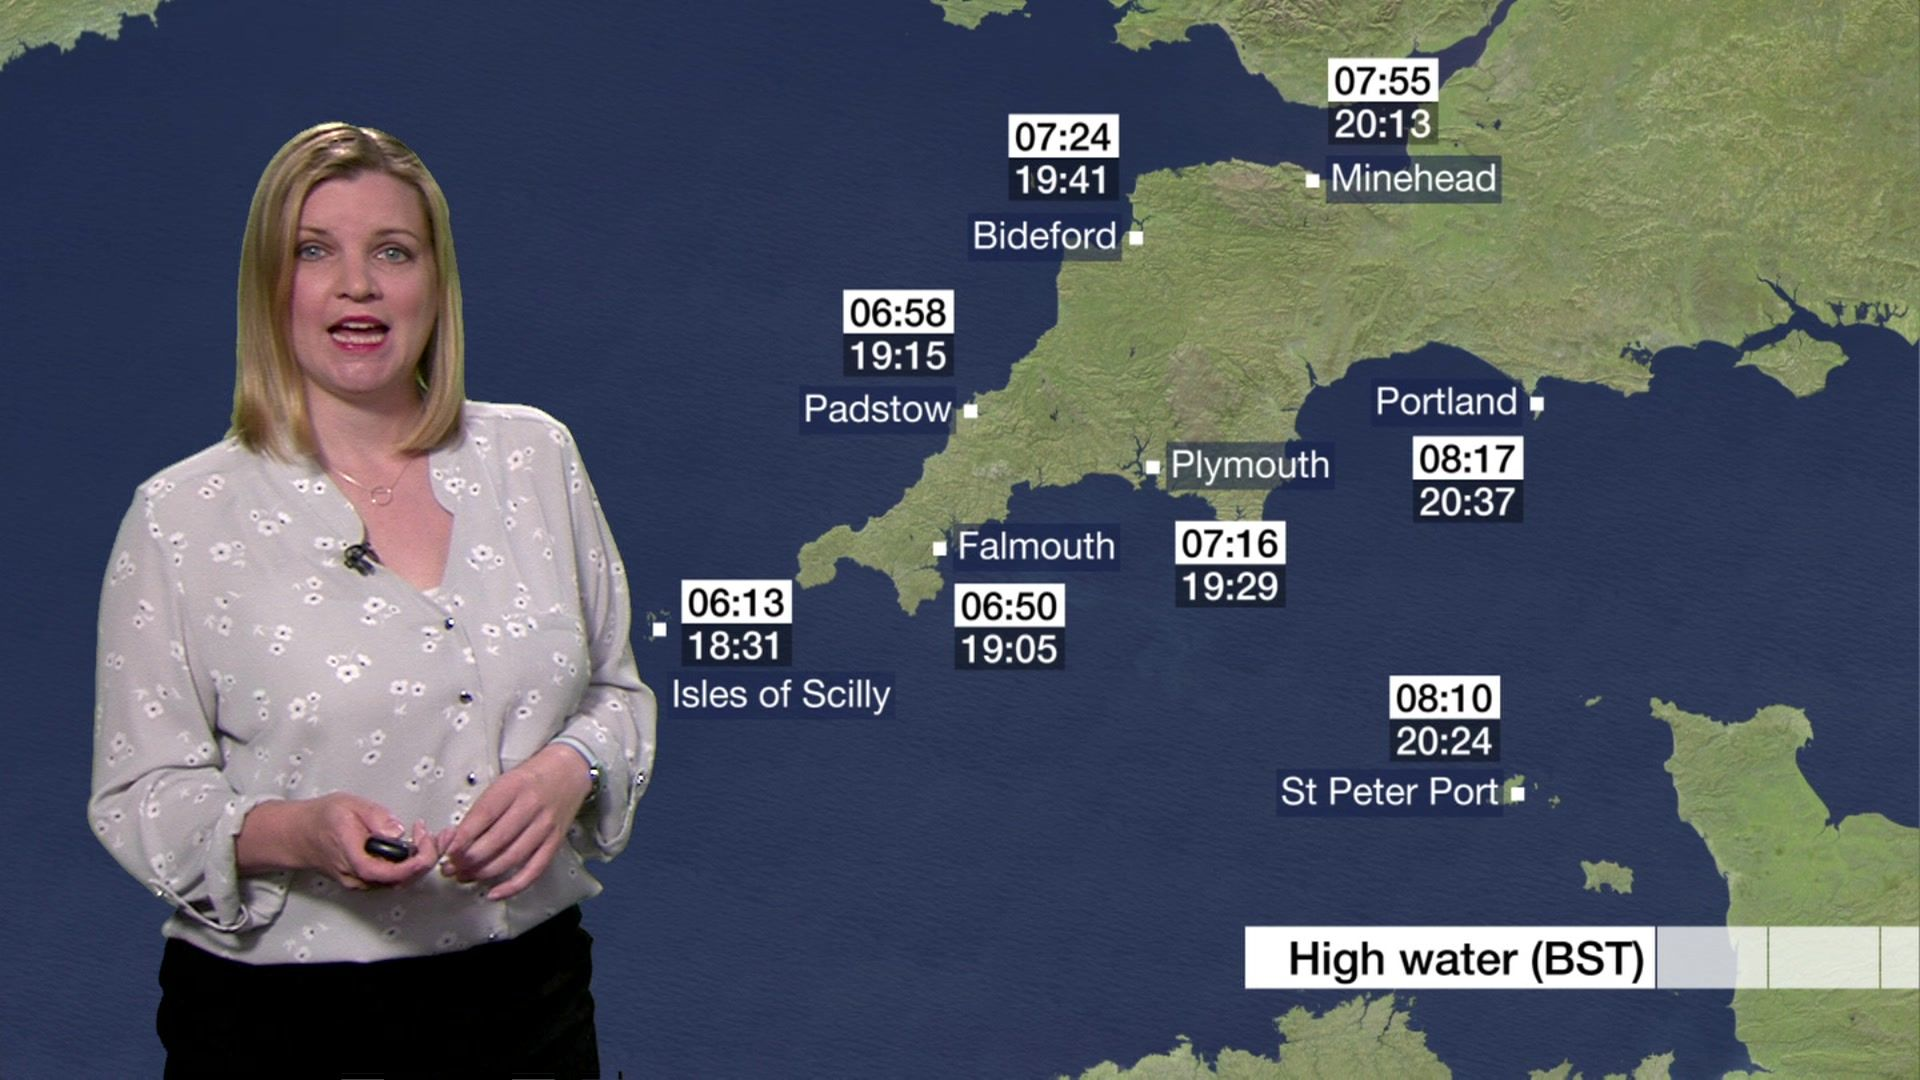 Emily Wood Weather Host Spotlight Points West South Today Bbc News Woman Personality Local News